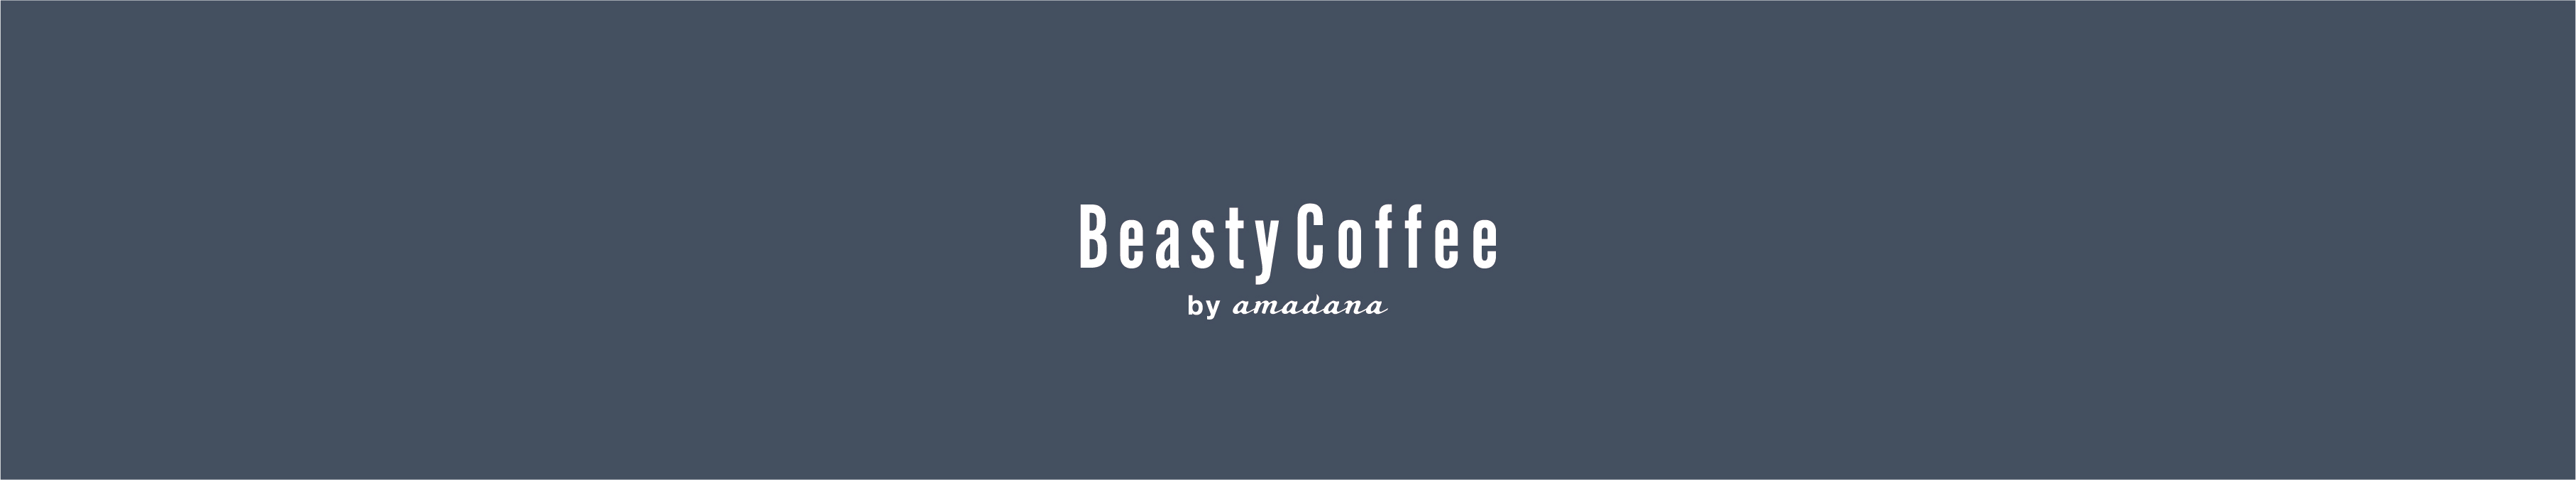 Beasty Coffee